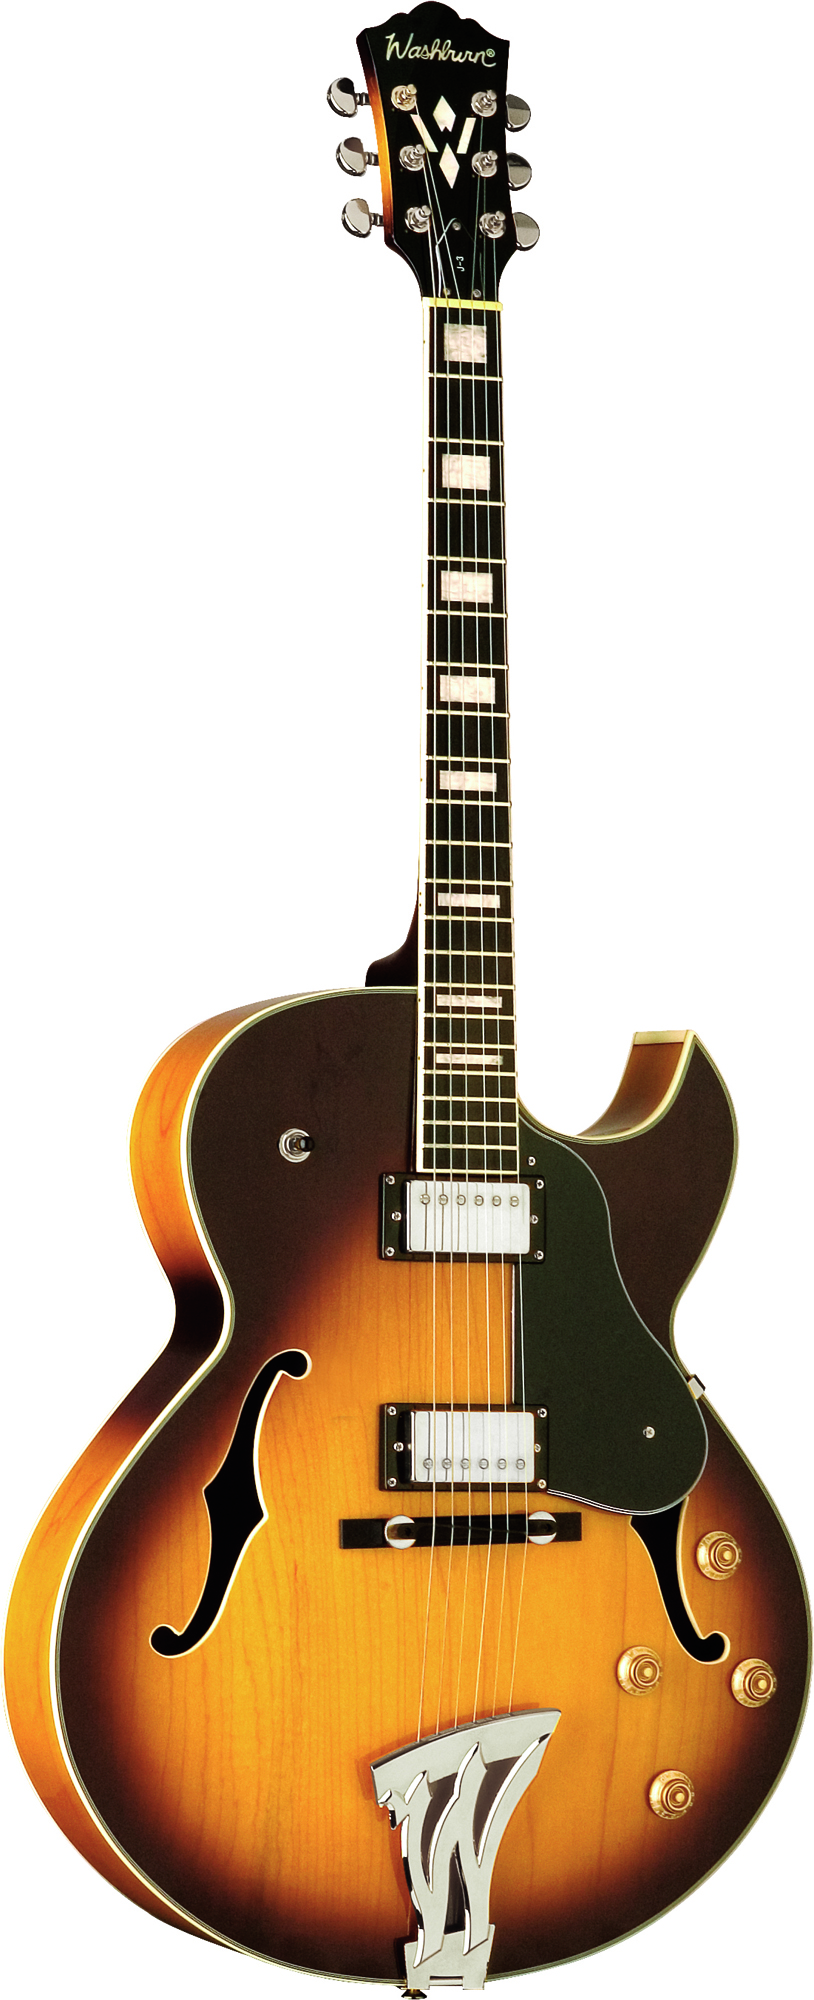 washburn j3tsk jazz electric florentine cutaway style guitar with 2 humbucker pickups tobacco. Black Bedroom Furniture Sets. Home Design Ideas